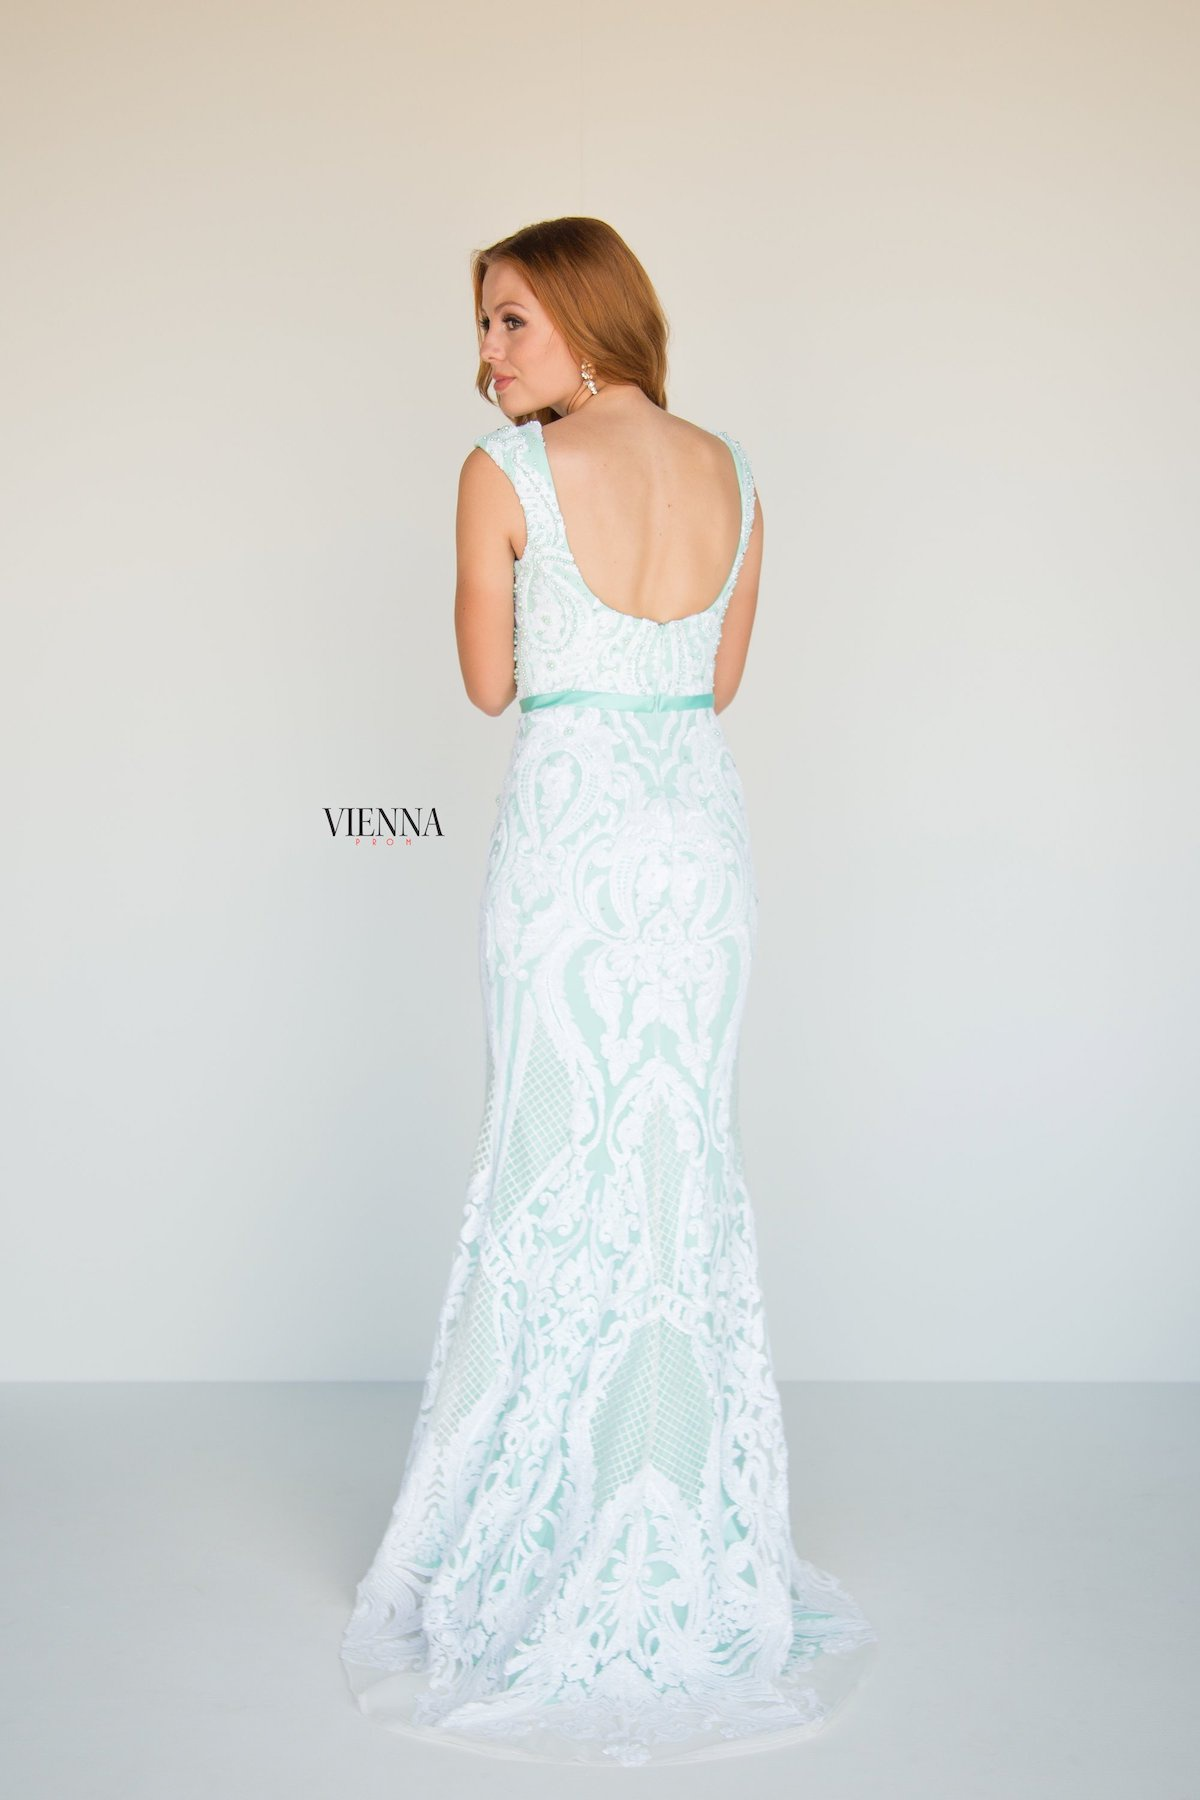 Style 8810 Vienna Green Size 18 Tall Height Lace Mermaid Dress on Queenly